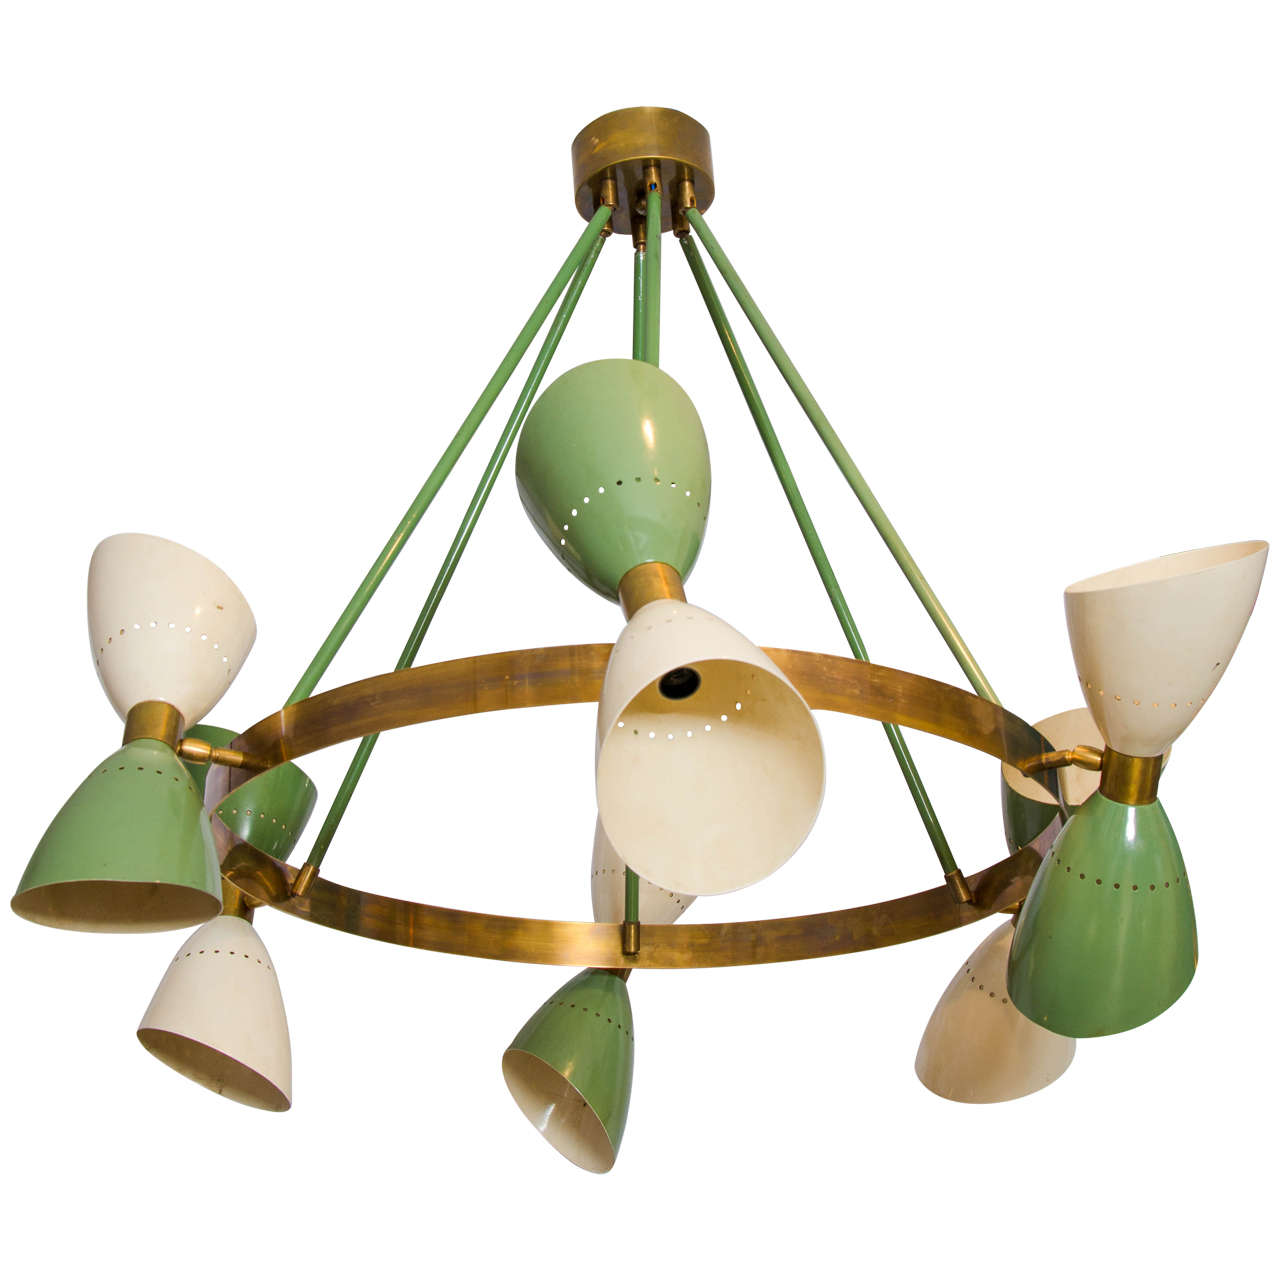 Large Italian 1950s Chandelier With Hourgl Shades 1